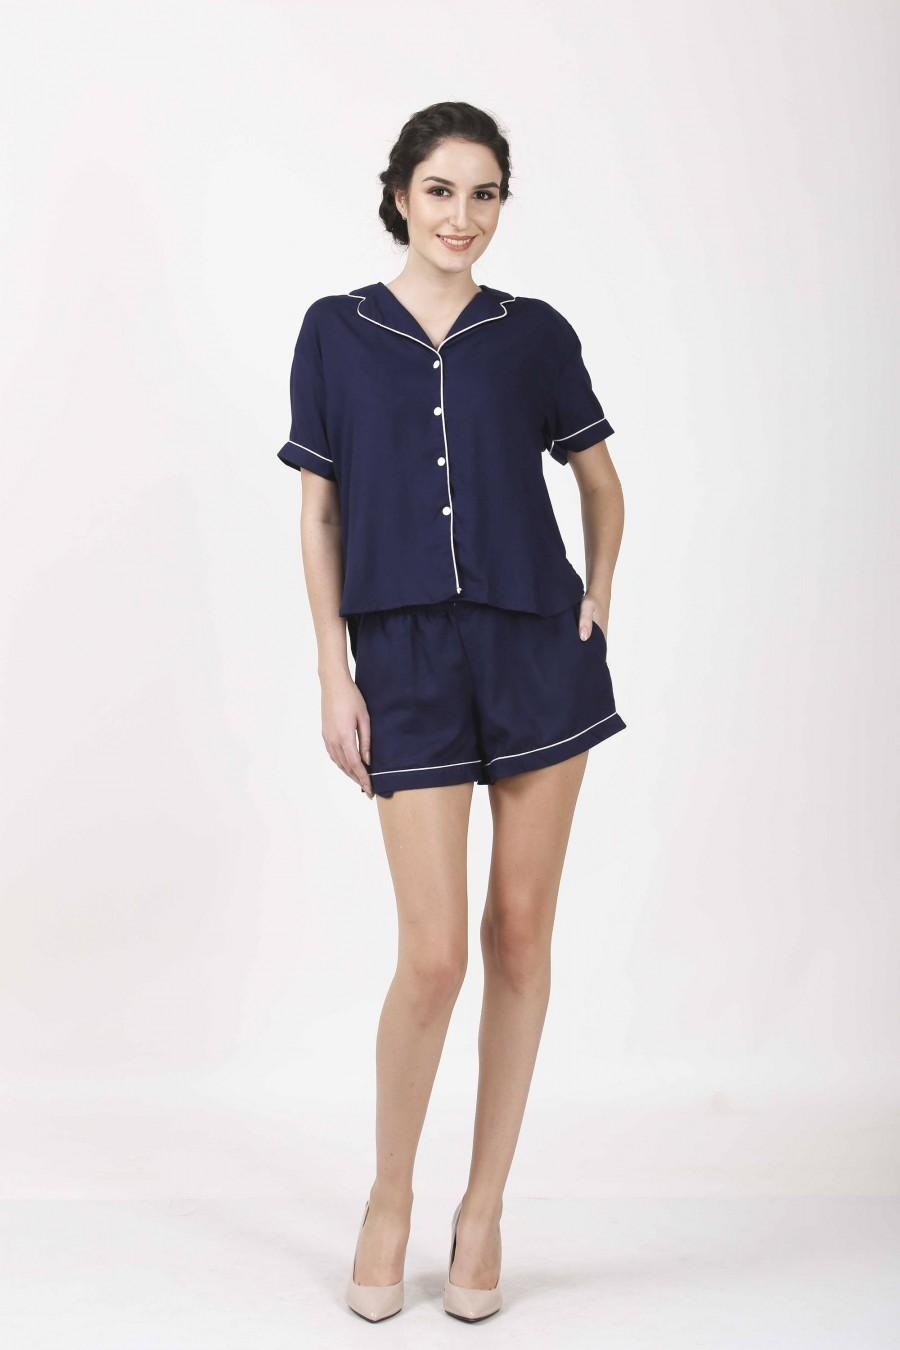 Свадьба - NAVY Blue pjs, Shirt With Monogram, Embroidery on shirt, Bridesmaids Shirts, Set of 9, Button Down, Gift for her, Set of 11